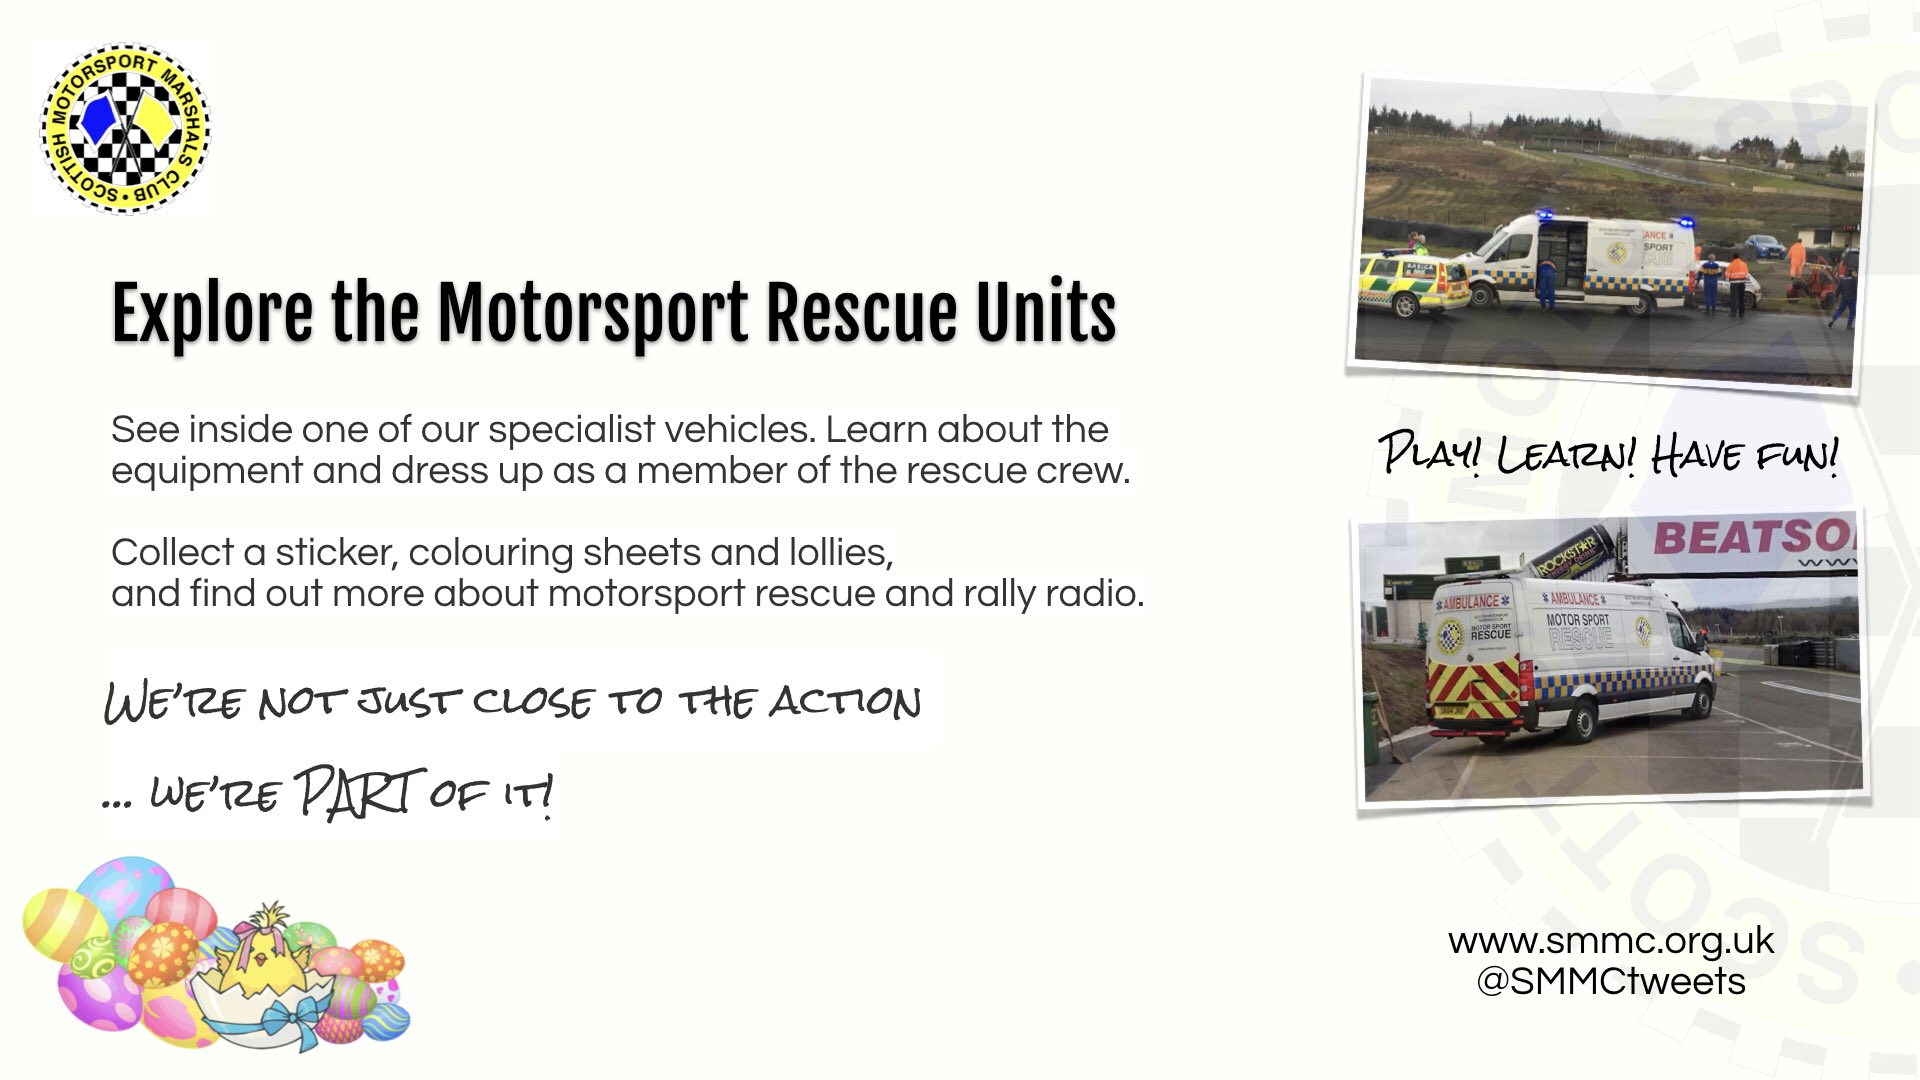 Explore a Rescue Unit at Knockhill